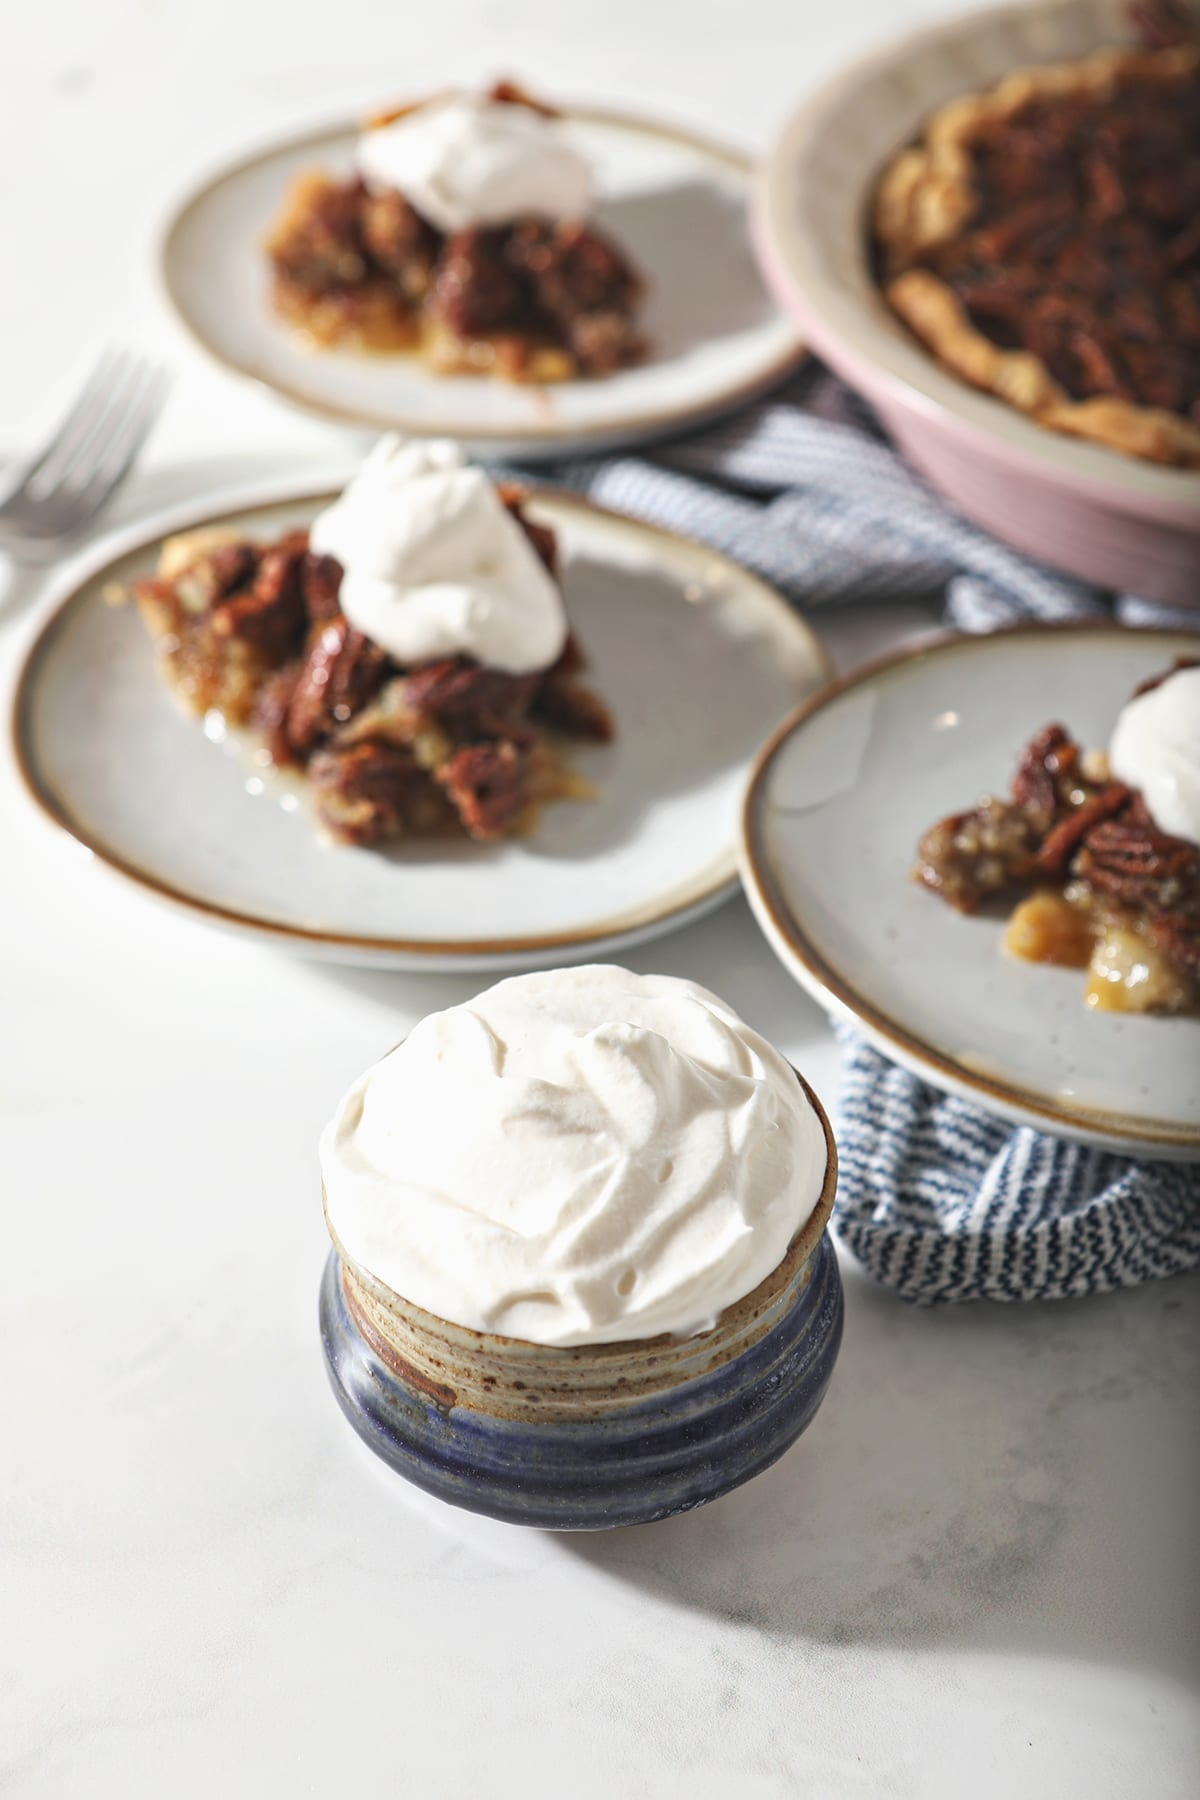 A blue pottery bowl holding a serving of homemade sweetened whipped cream next to three plates holding slices of pecan pie